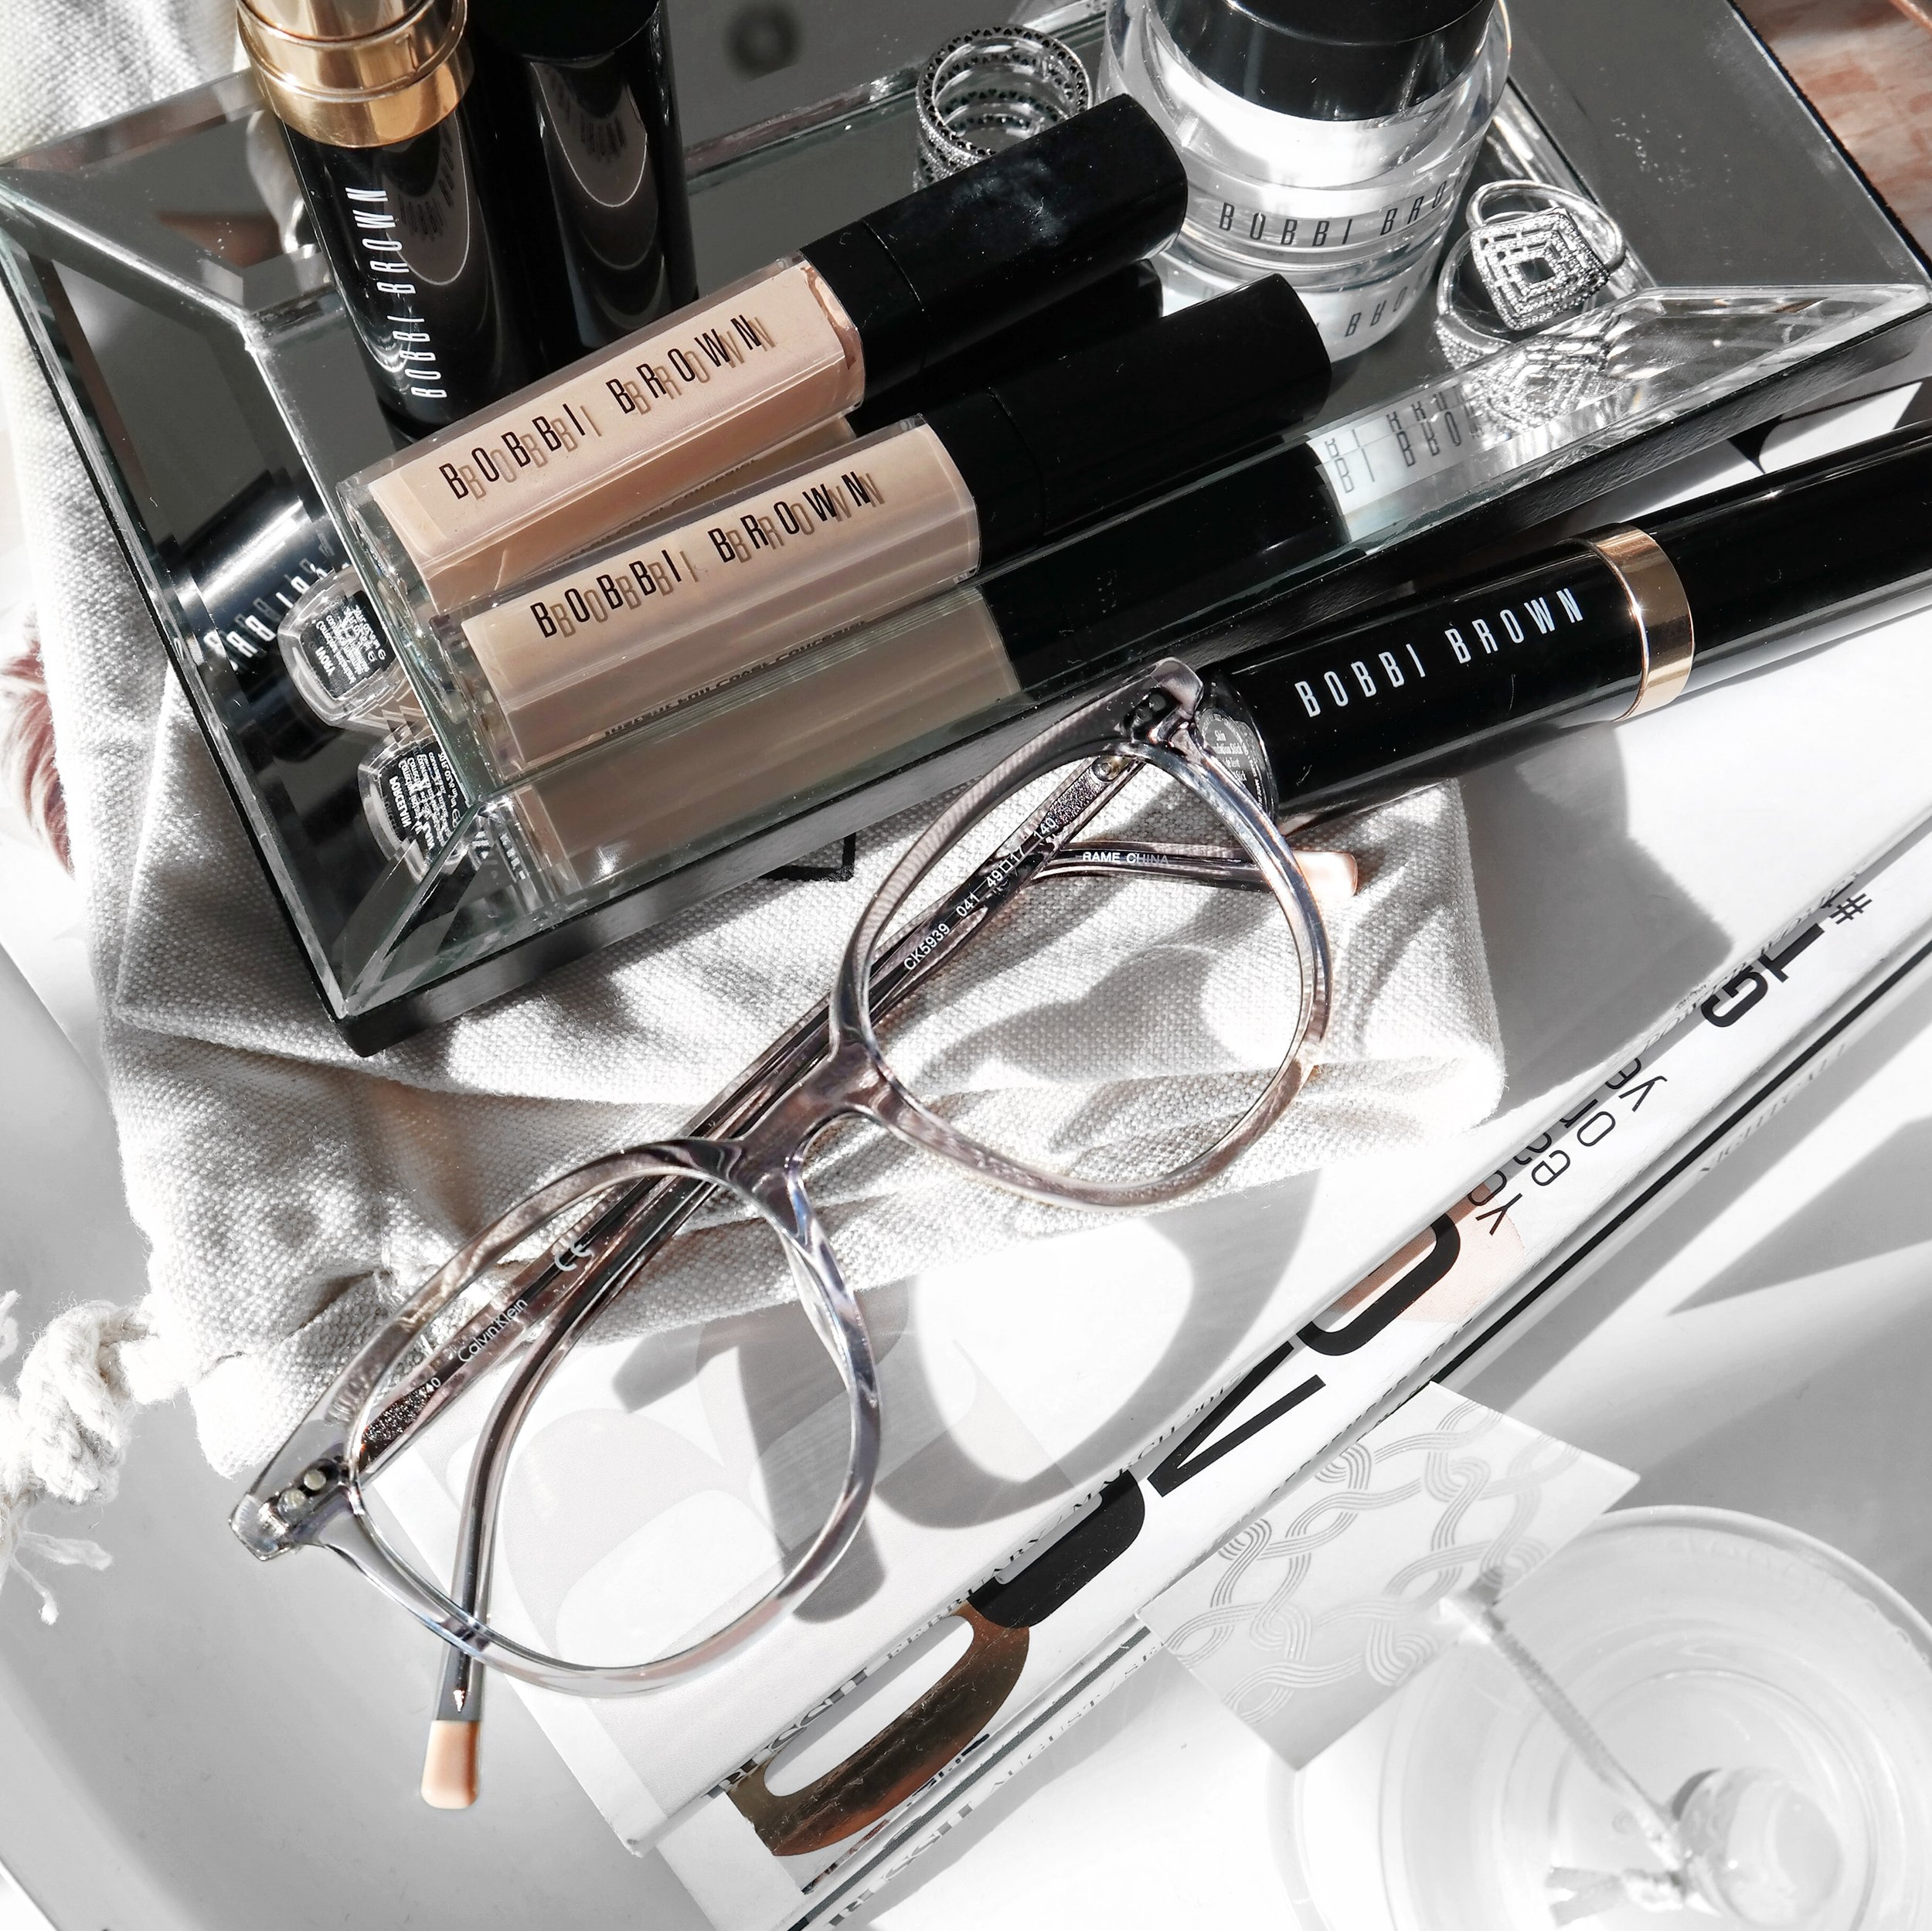 Bobbi Brown Instant Full Cover Concealer review | Izzy Wears Blog - SPEQS